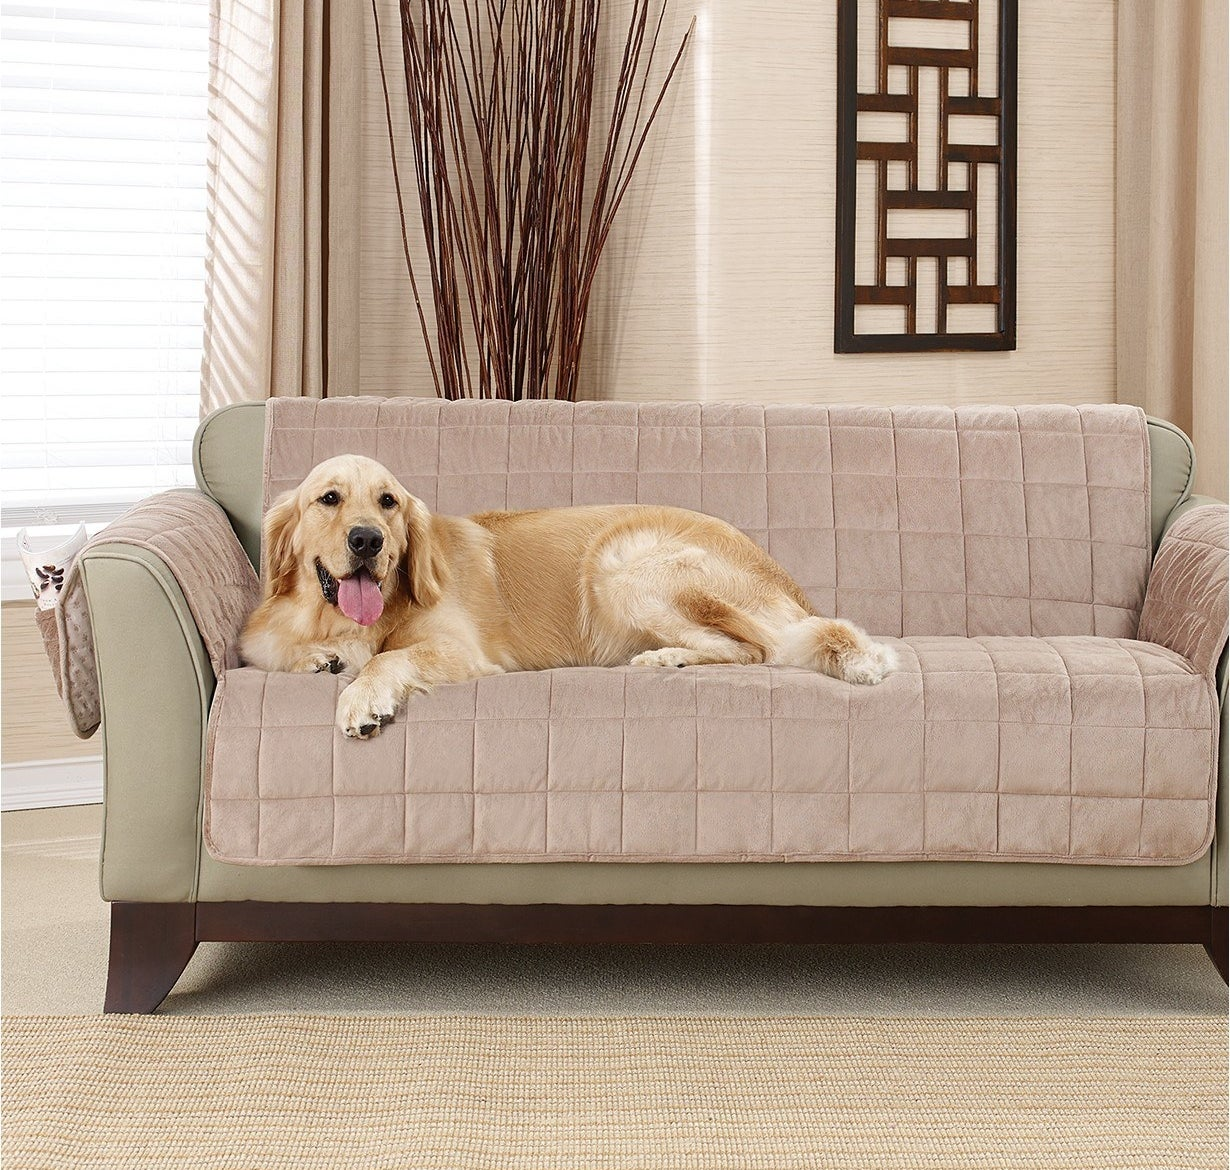 golden retriever laying on a couch with the pet slipcover on it